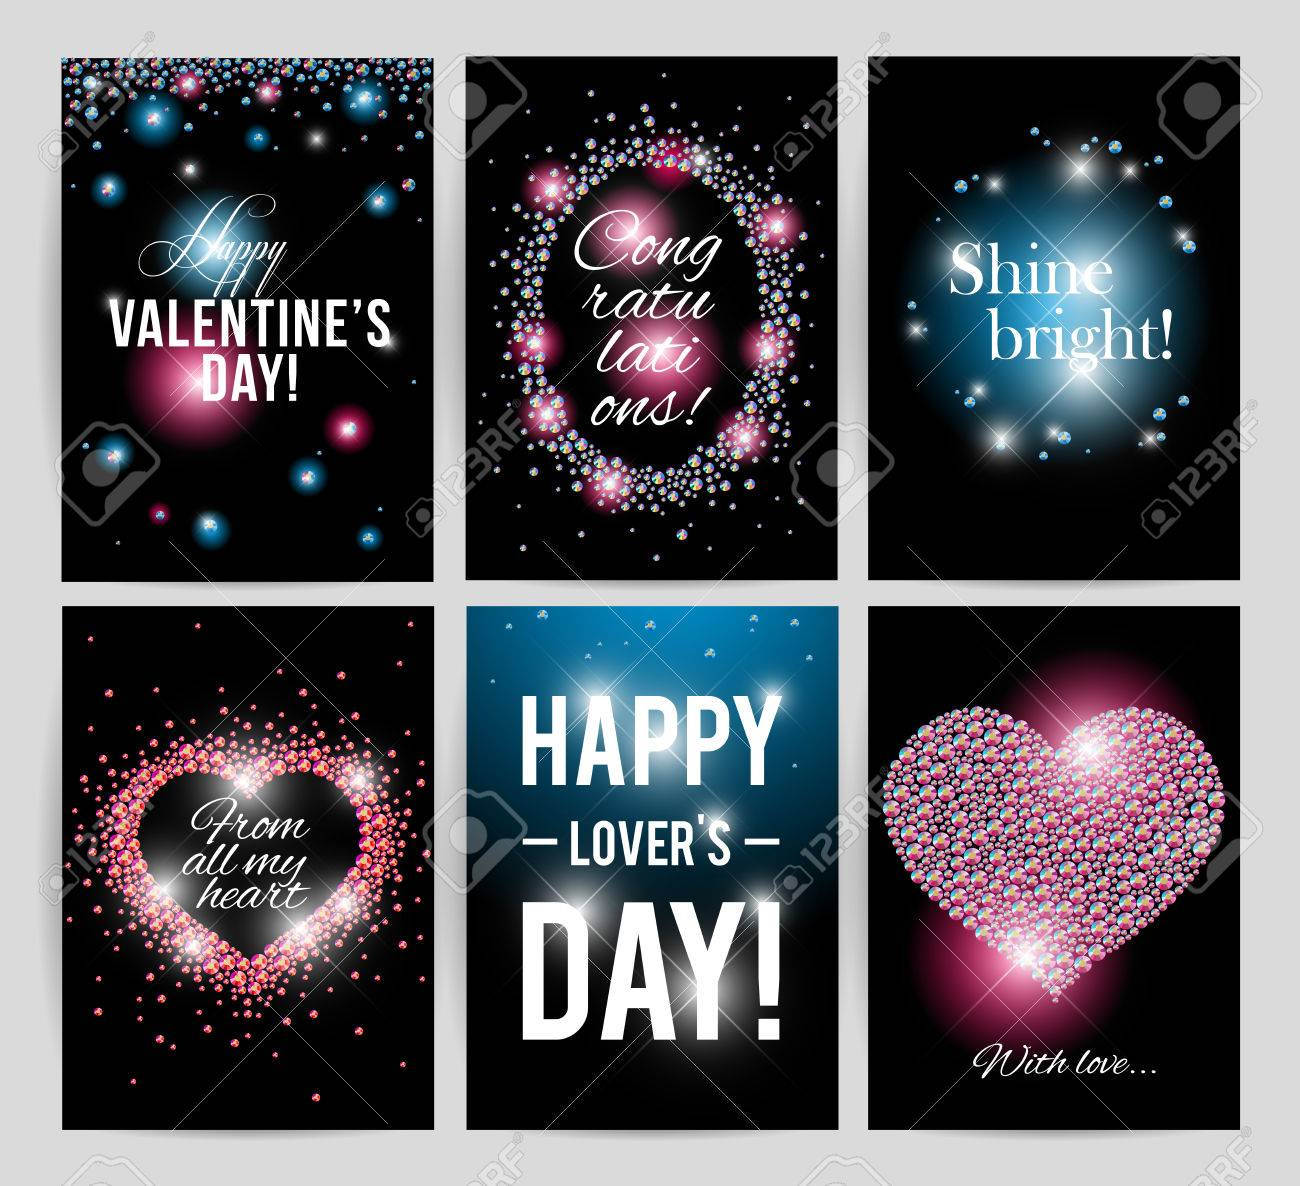 Vector valentines day card design love postcard wedding love postcard wedding invitation anniversary happy birthday party flyer or leaflet template gift present card sample with warm and best regards stopboris Image collections